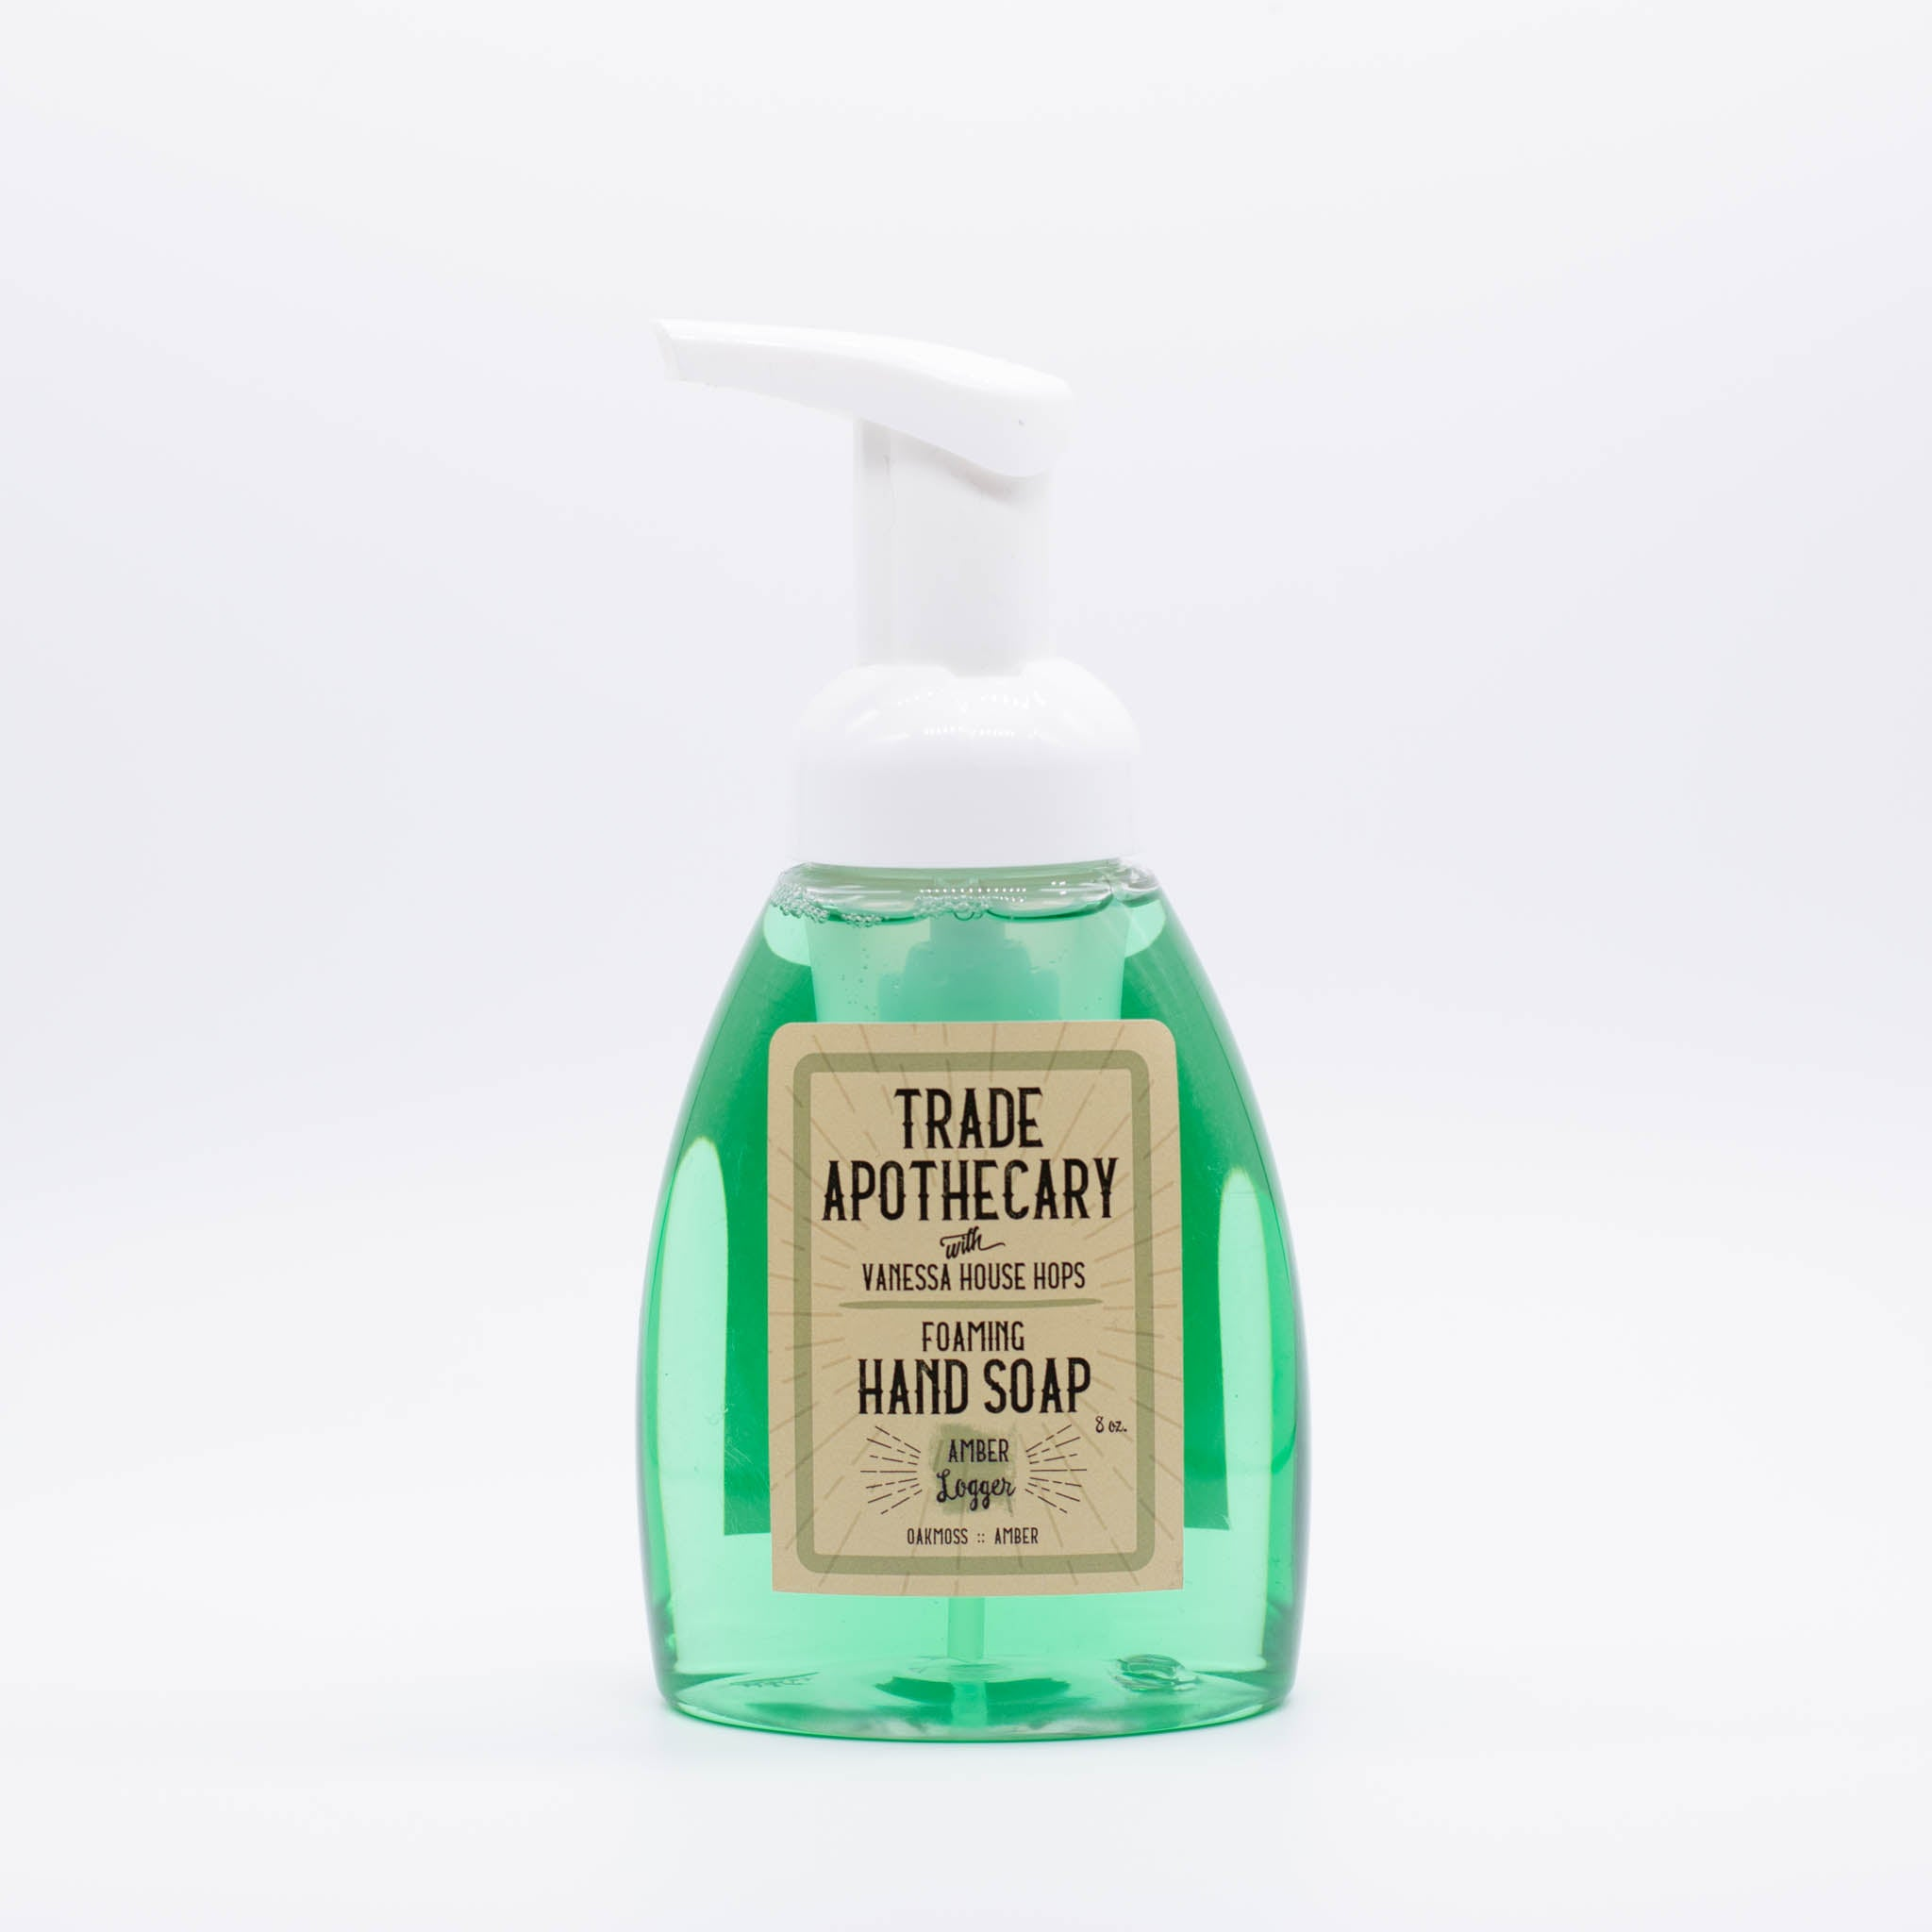 Amber Logger Foaming Hand Soap